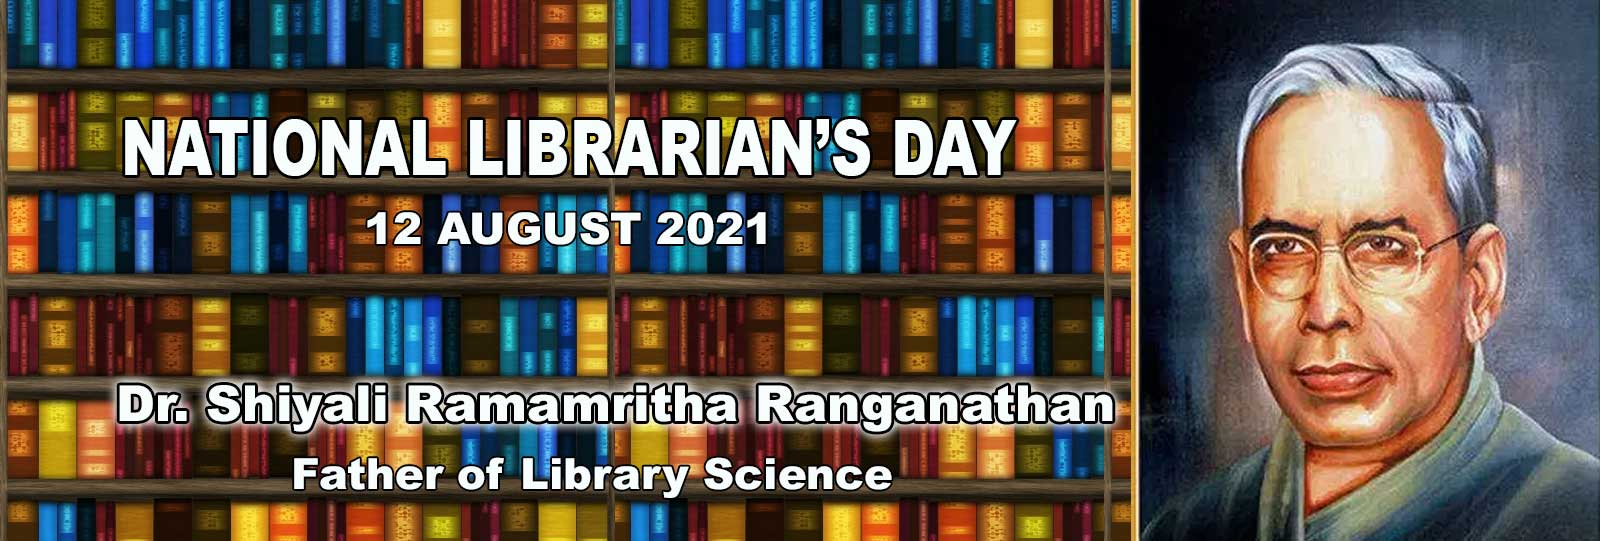 National Librarian's Day